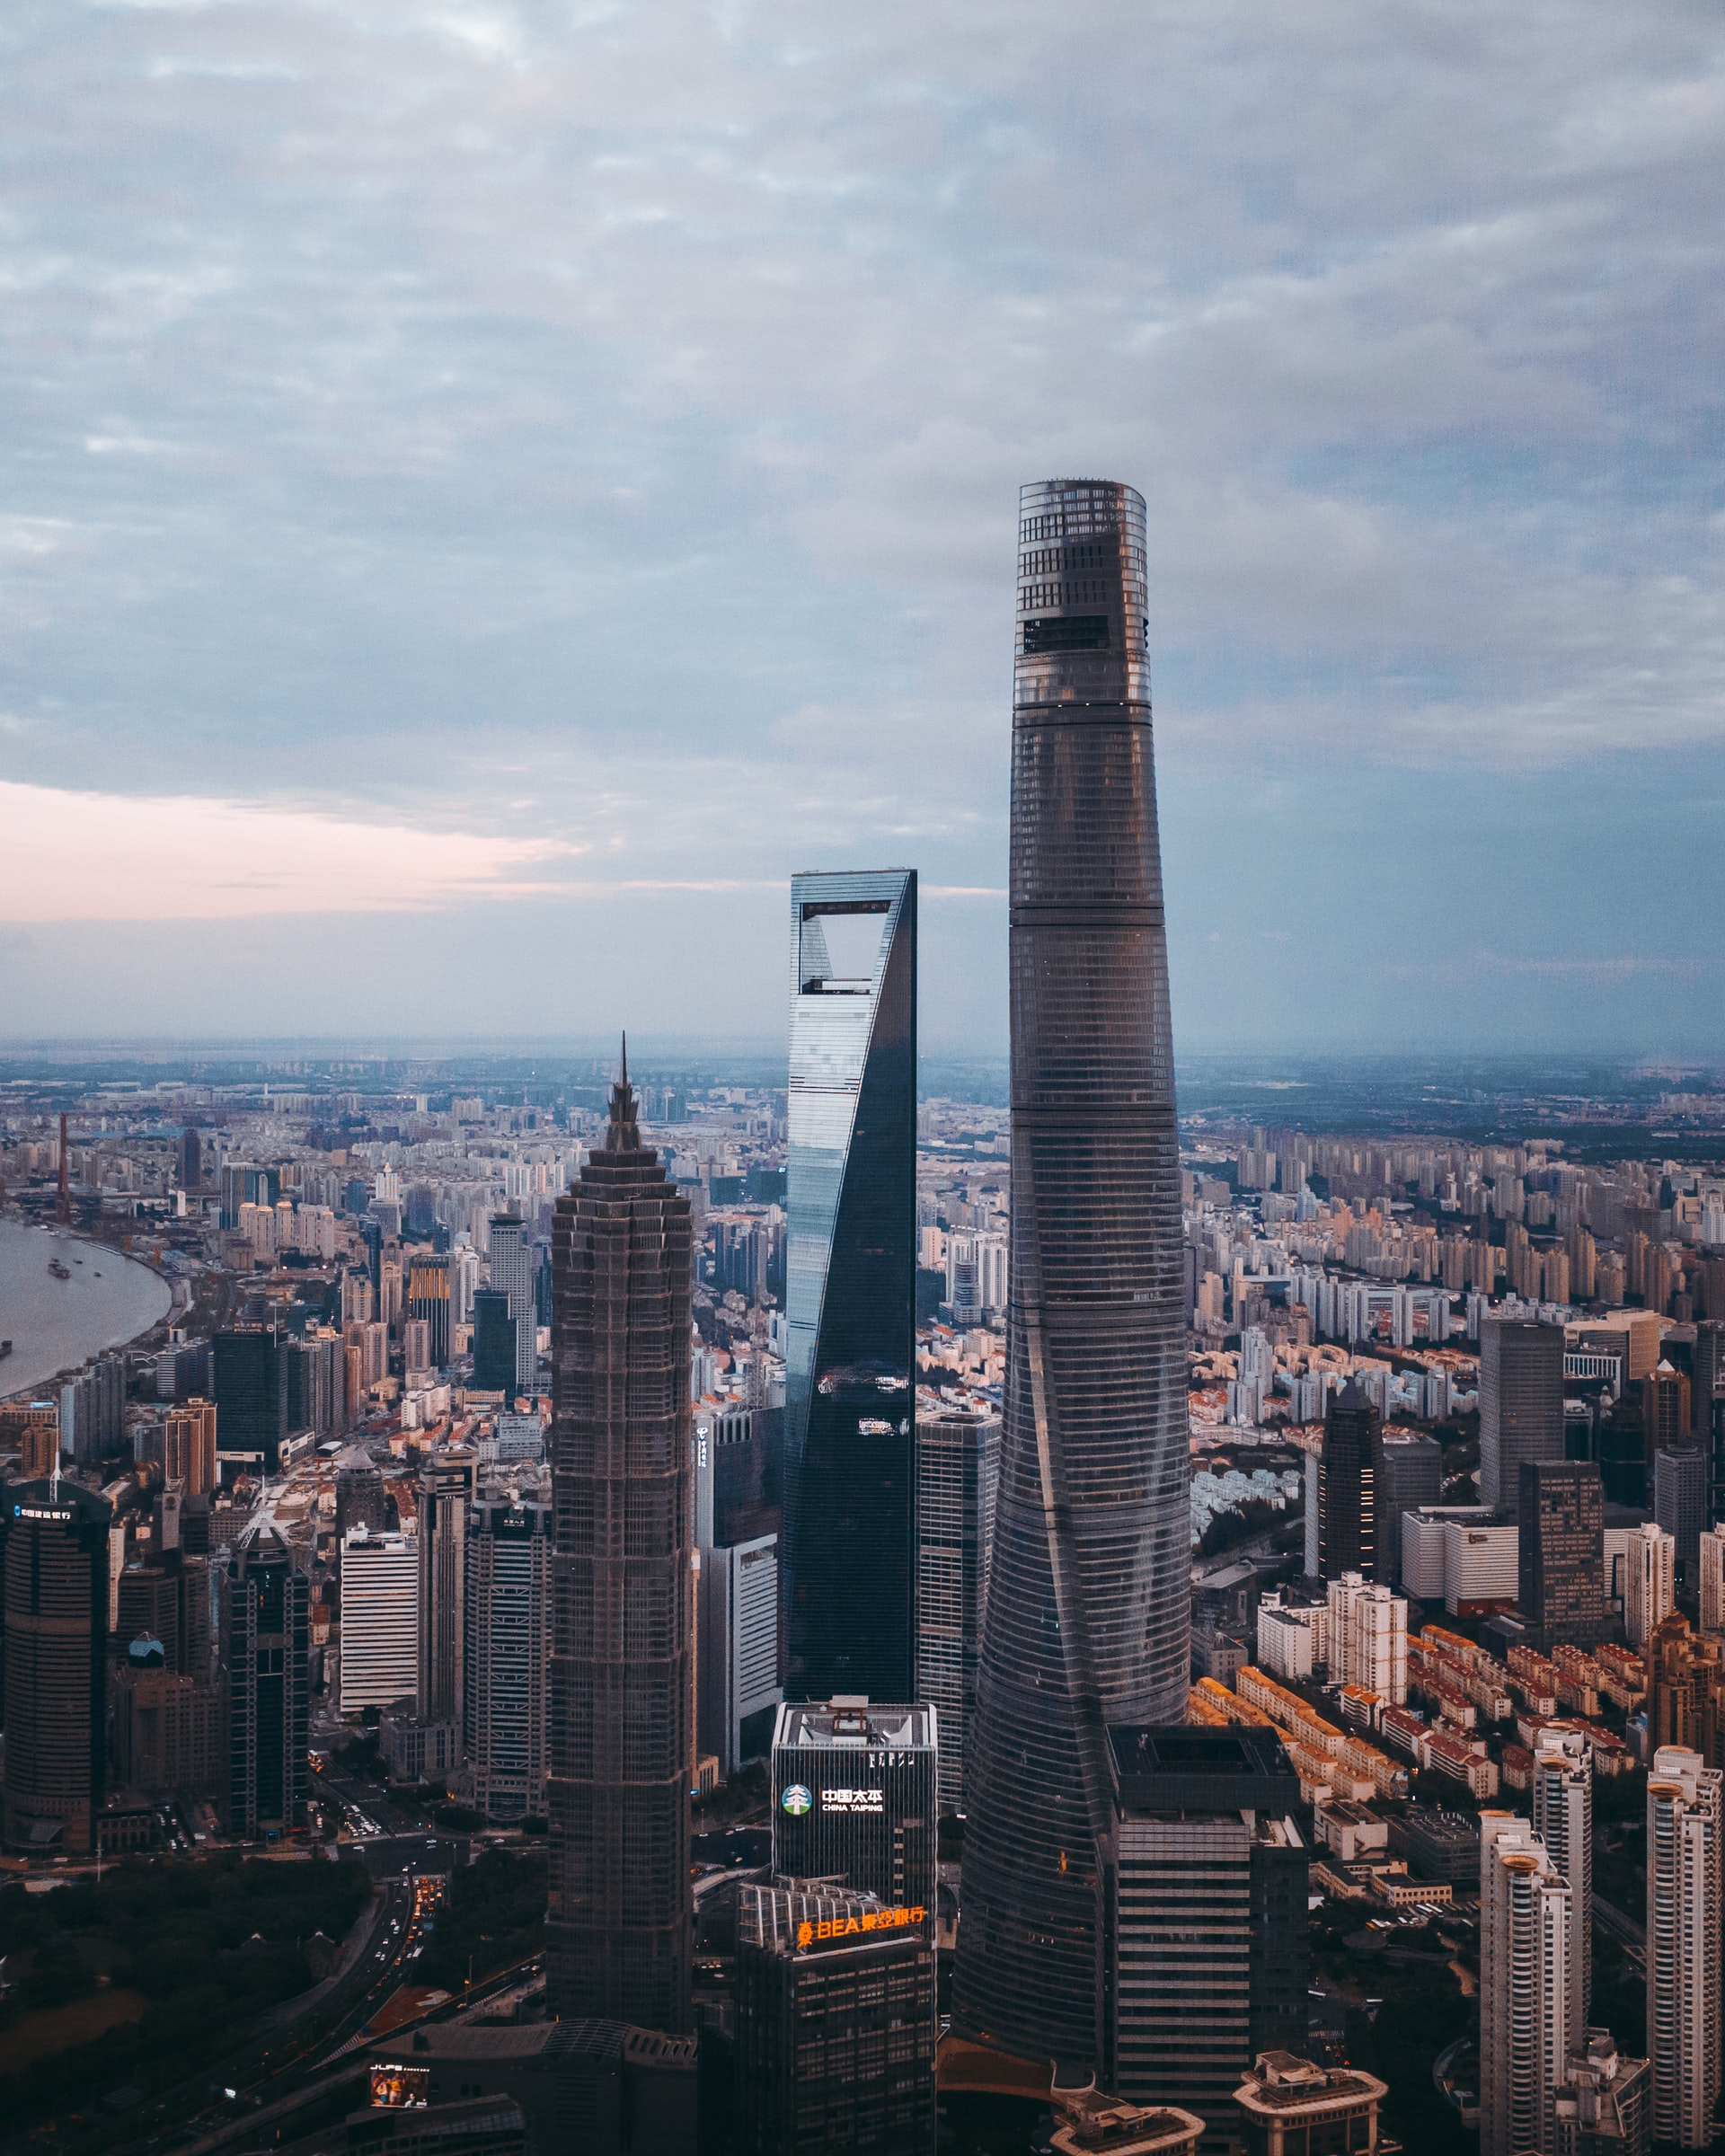 Shanghai Tower - 丁亦然